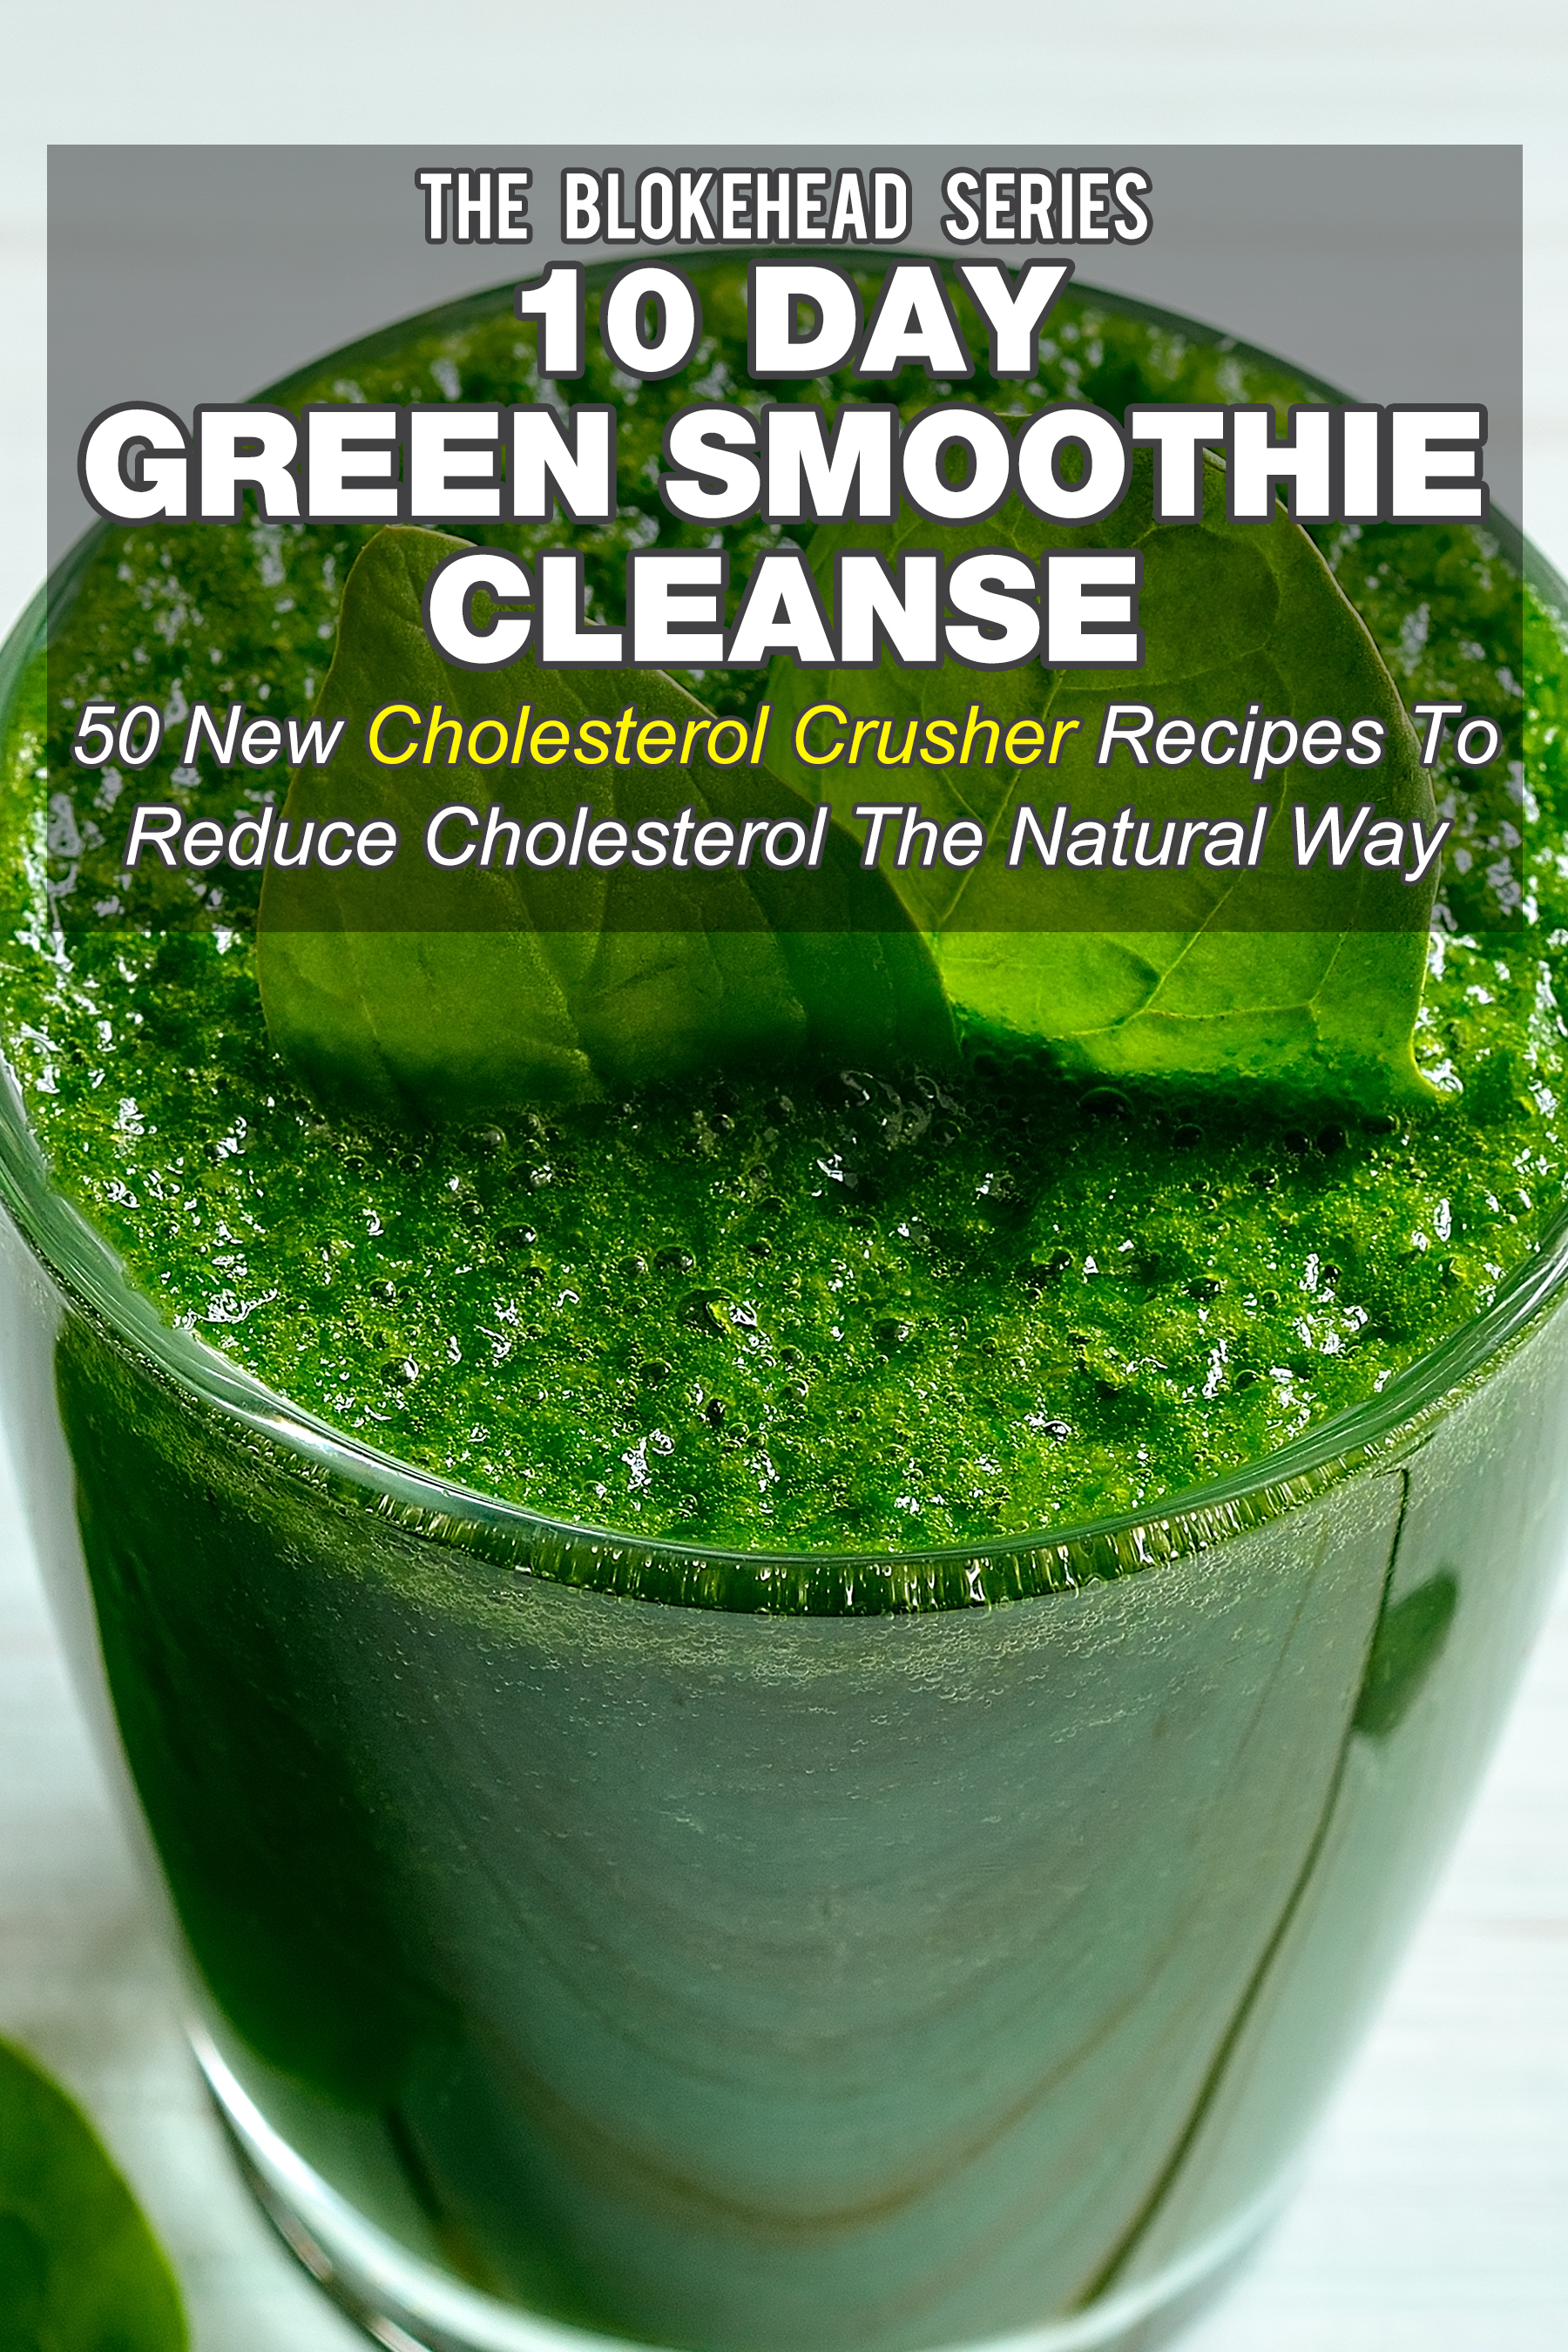 10 day green smoothie cleanse: 50 new cholesterol crusher recipes the natural way